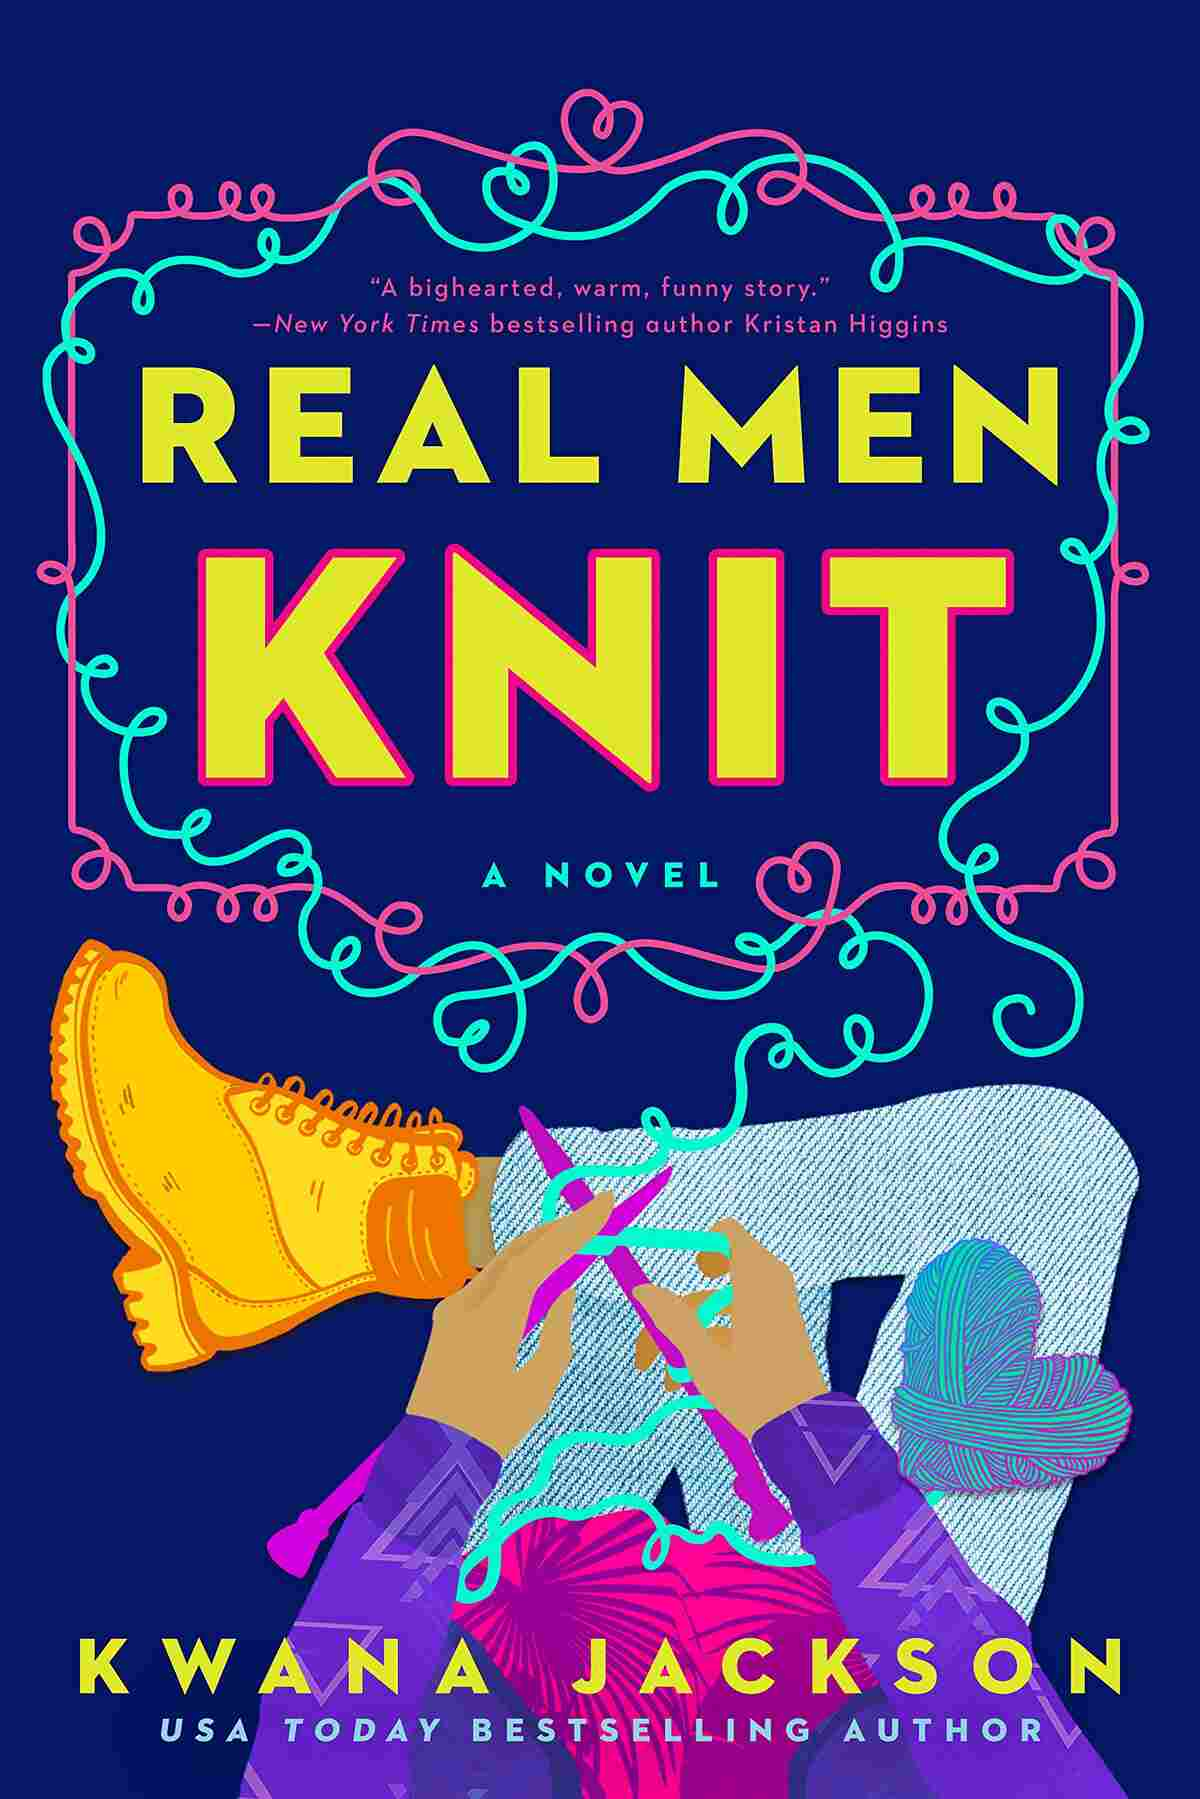 Real Men Knit, by Kwana Jackson